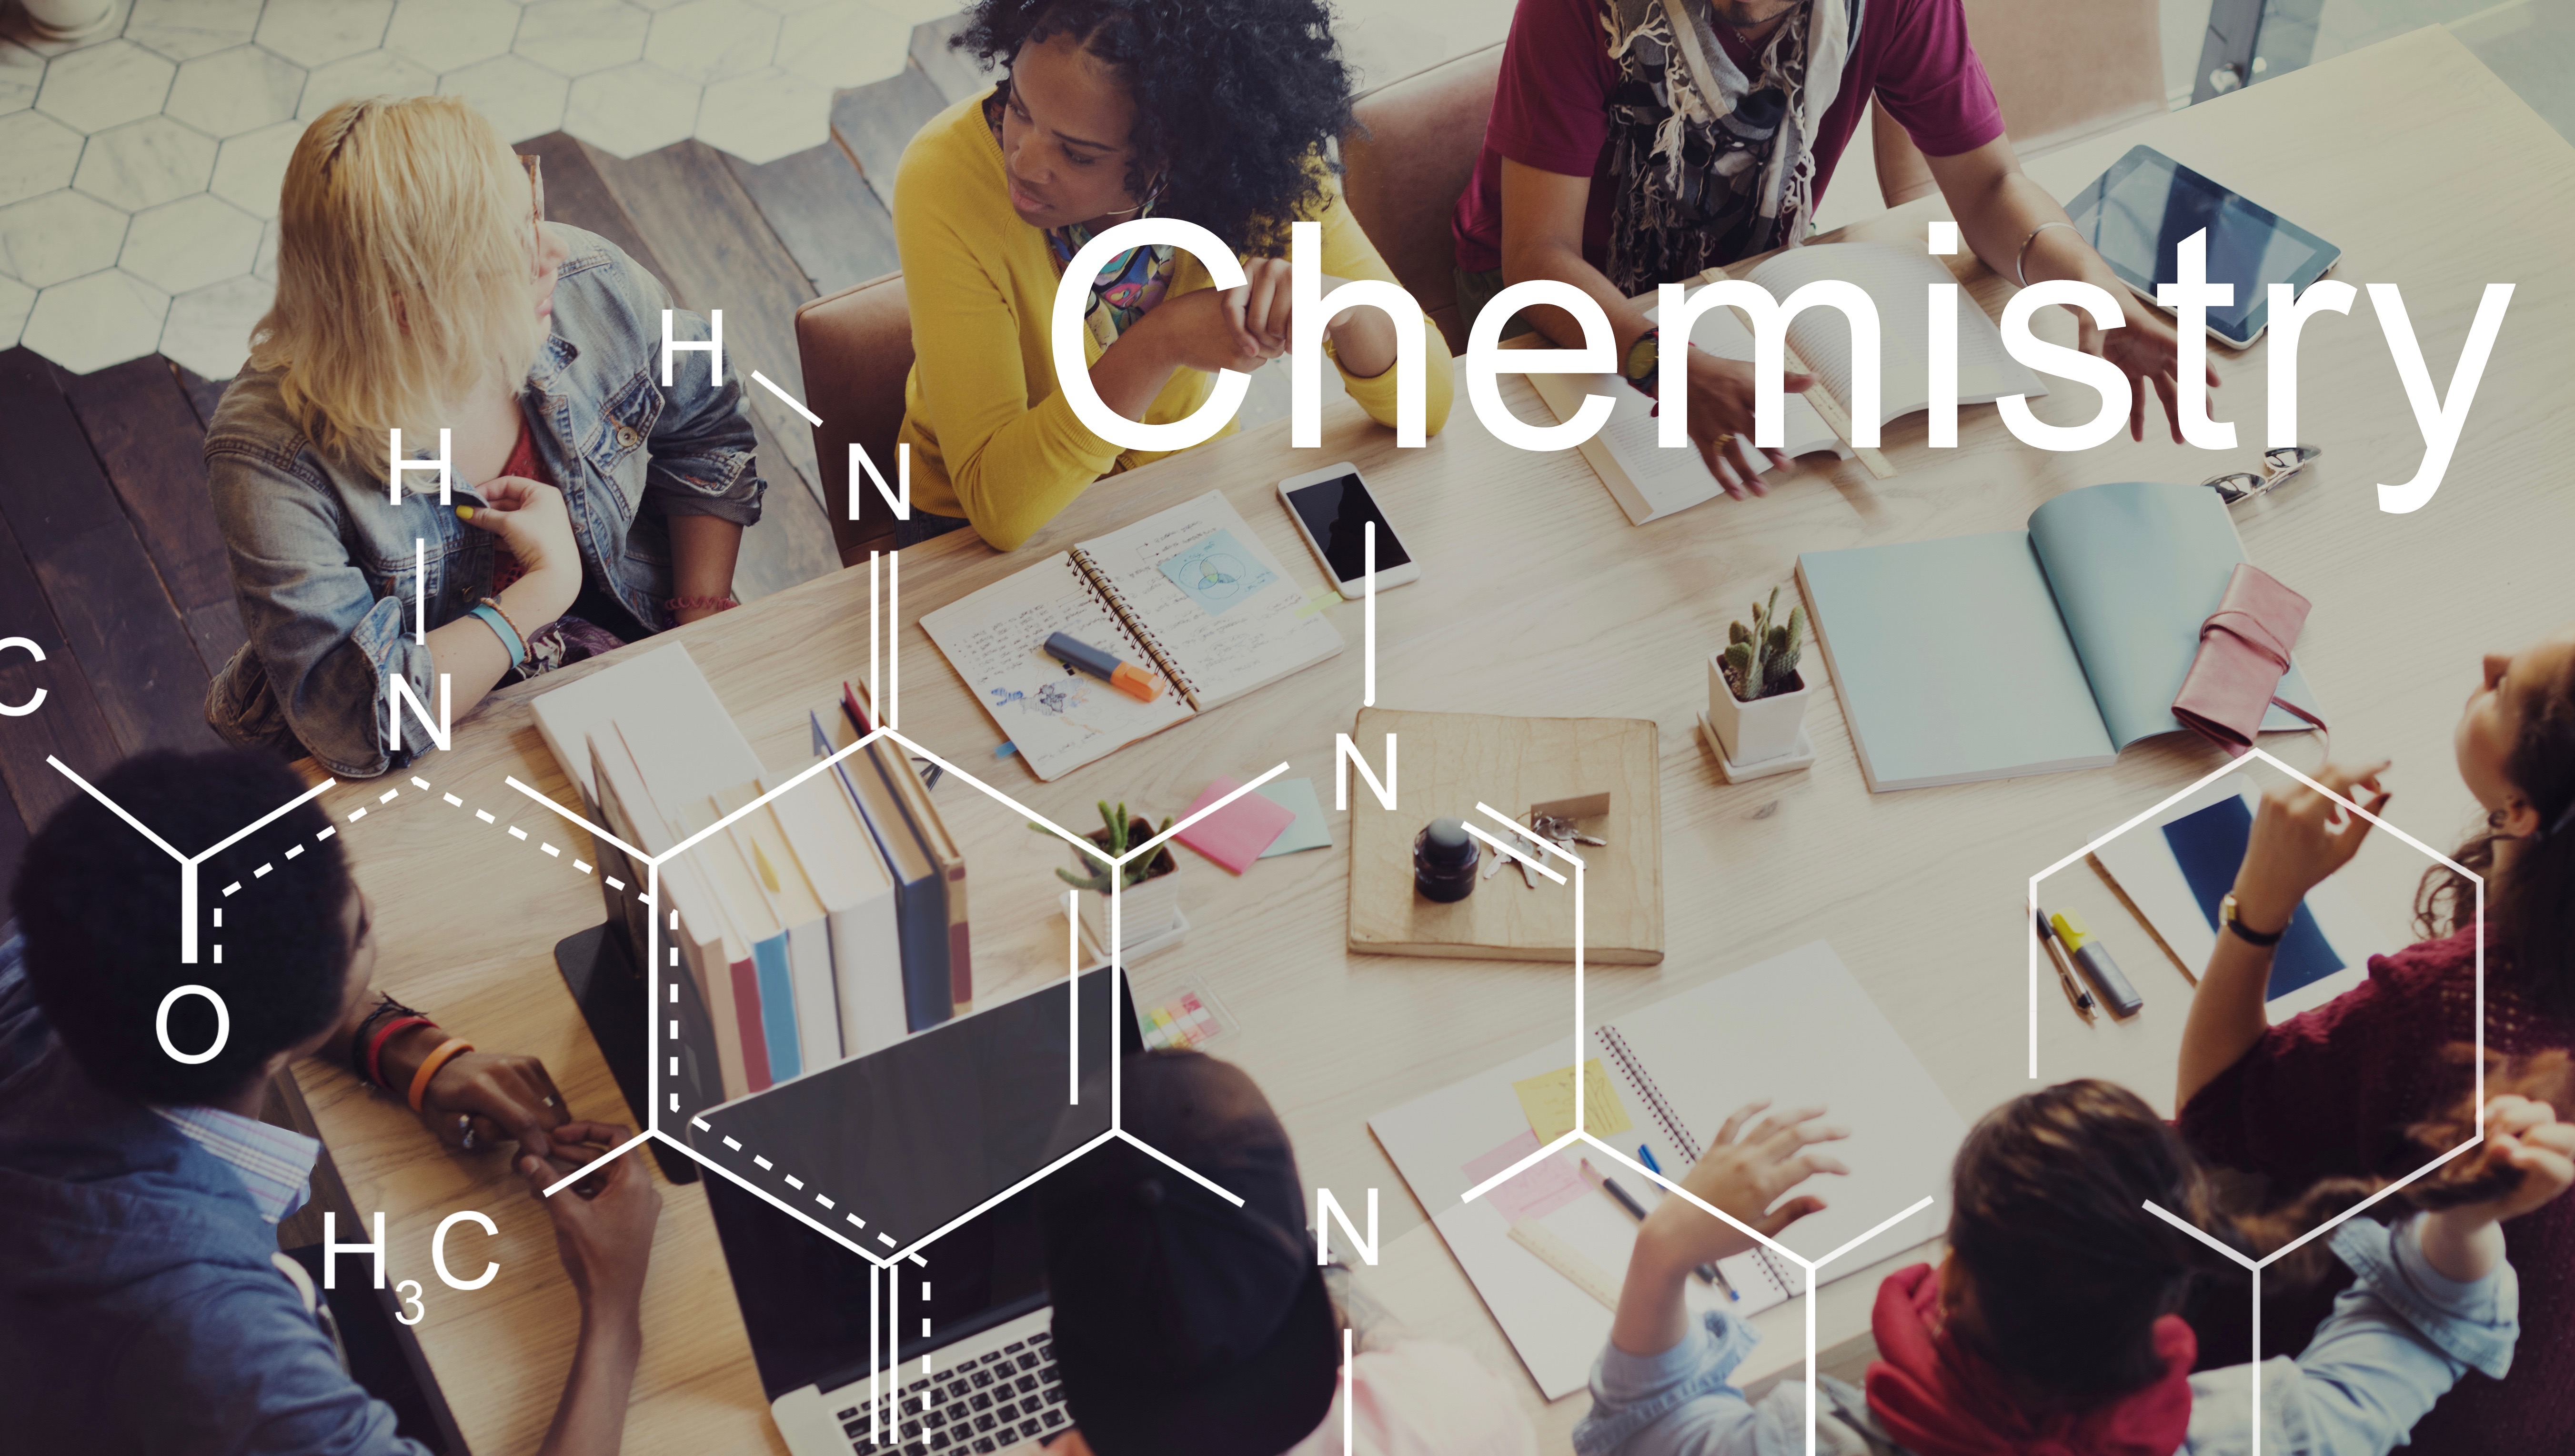 The Chemistry of the Company